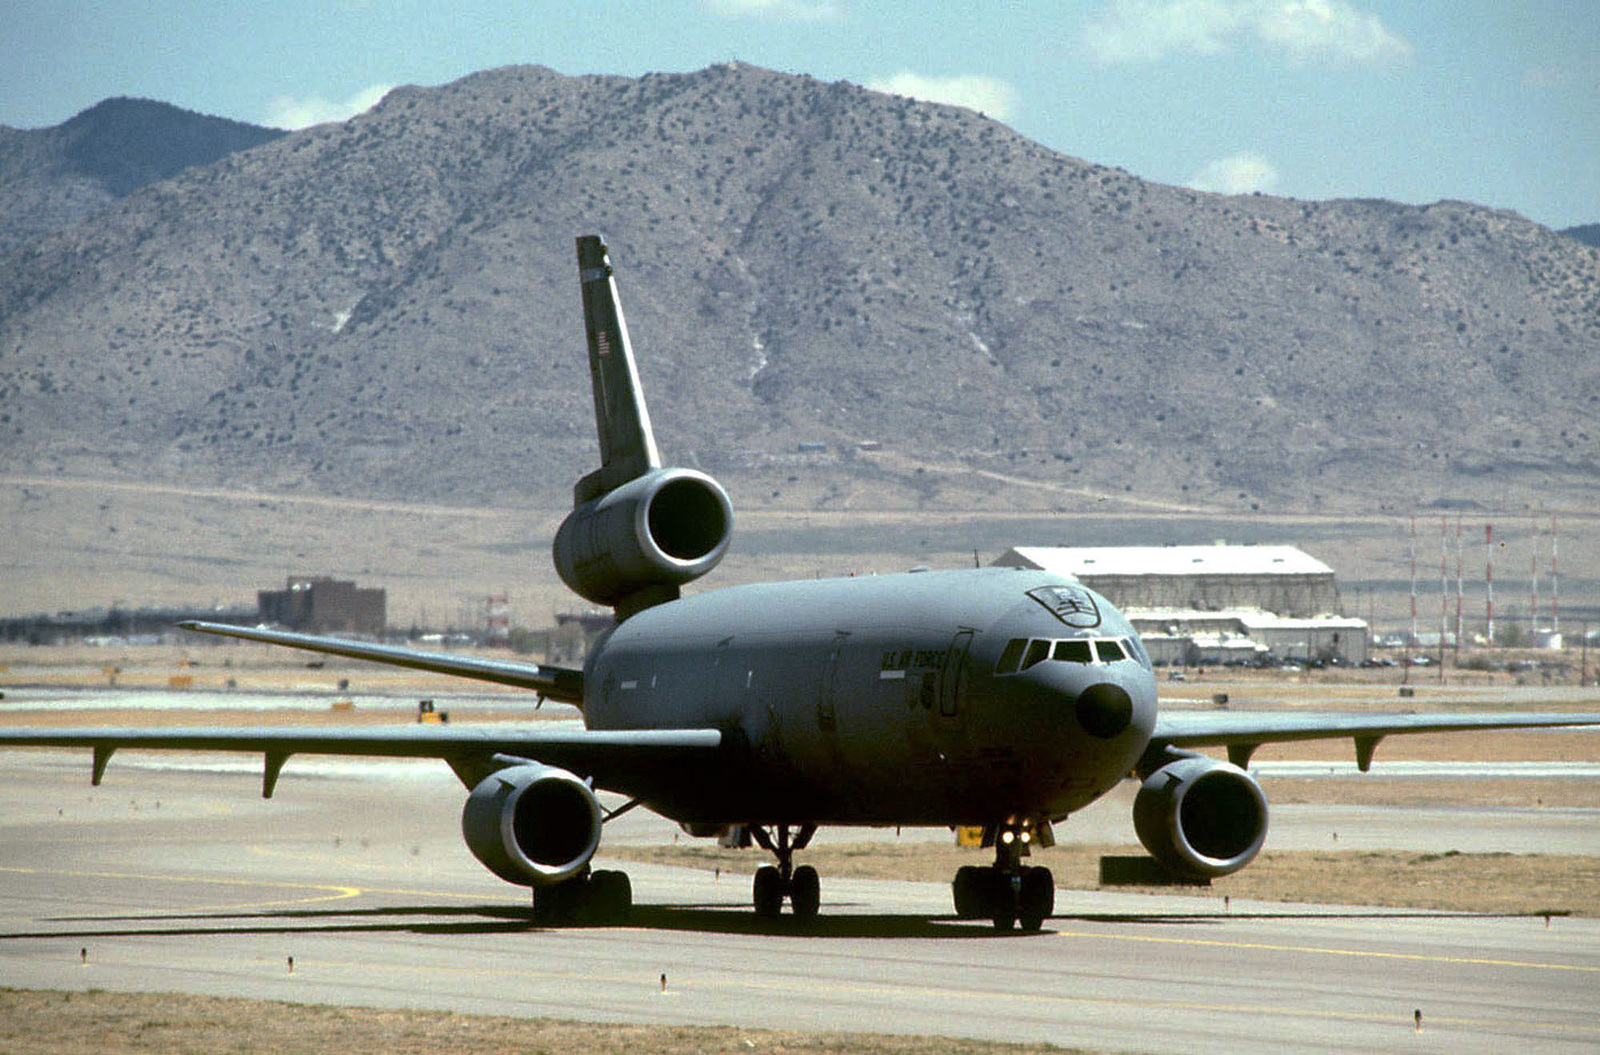 A 78th Air Refueling Squadron, McGuire Air Force Base, New Jersey KC-10 Extender arrives at International Airport/Kirtland Air Force Base, New Mexico. The KC-10 is carrying supplies and equipment from Tyndall Air Force Base for the 2nd Fighter Squadron to use during the world's largest joint service, multi-national tactical air operations exercise